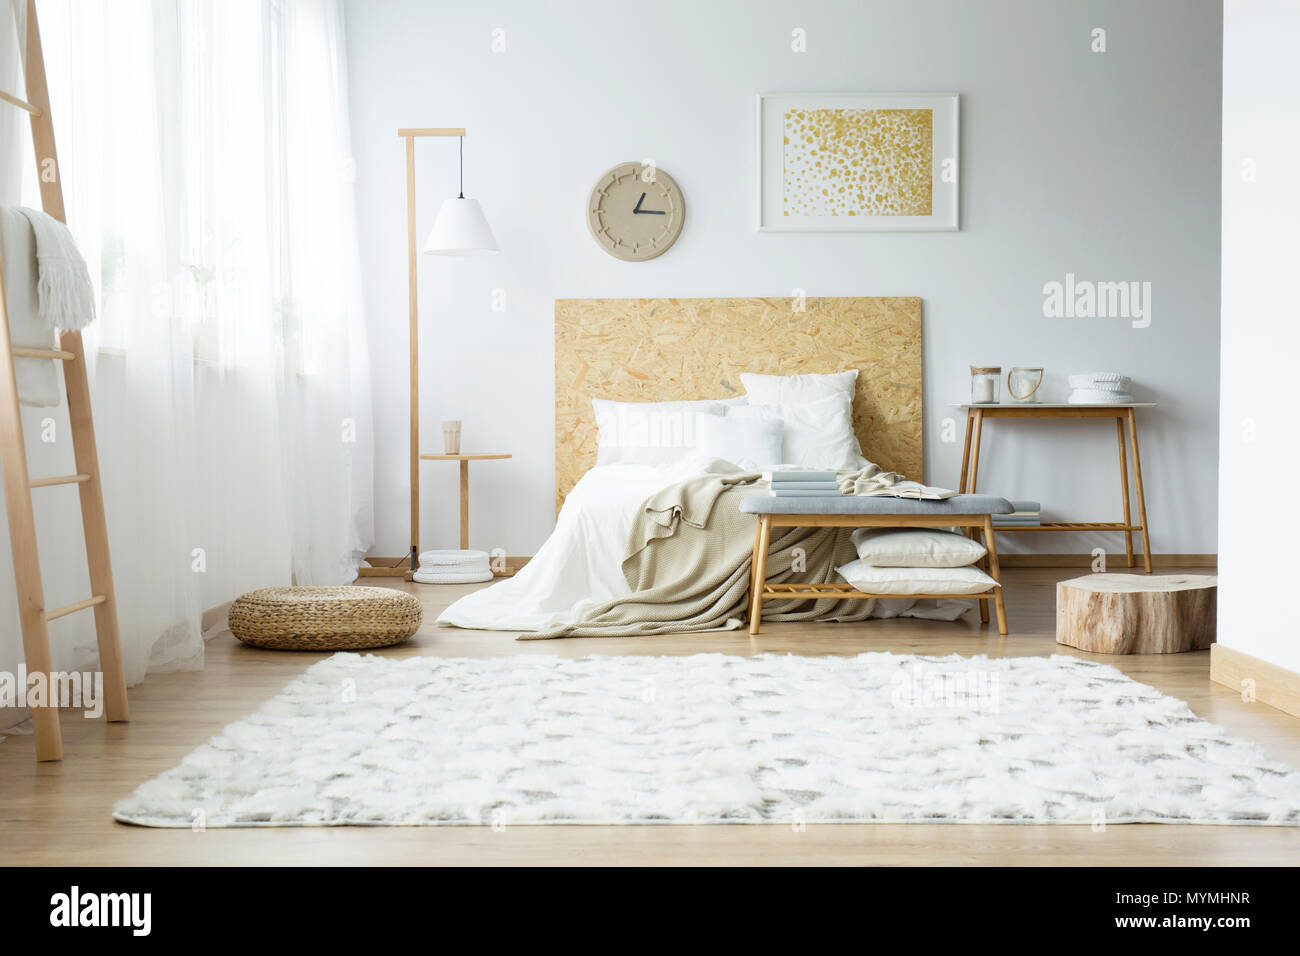 Bright carpet, pouf and wooden stump in spacious bedroom with gold painting above bed near lamp - Stock Image